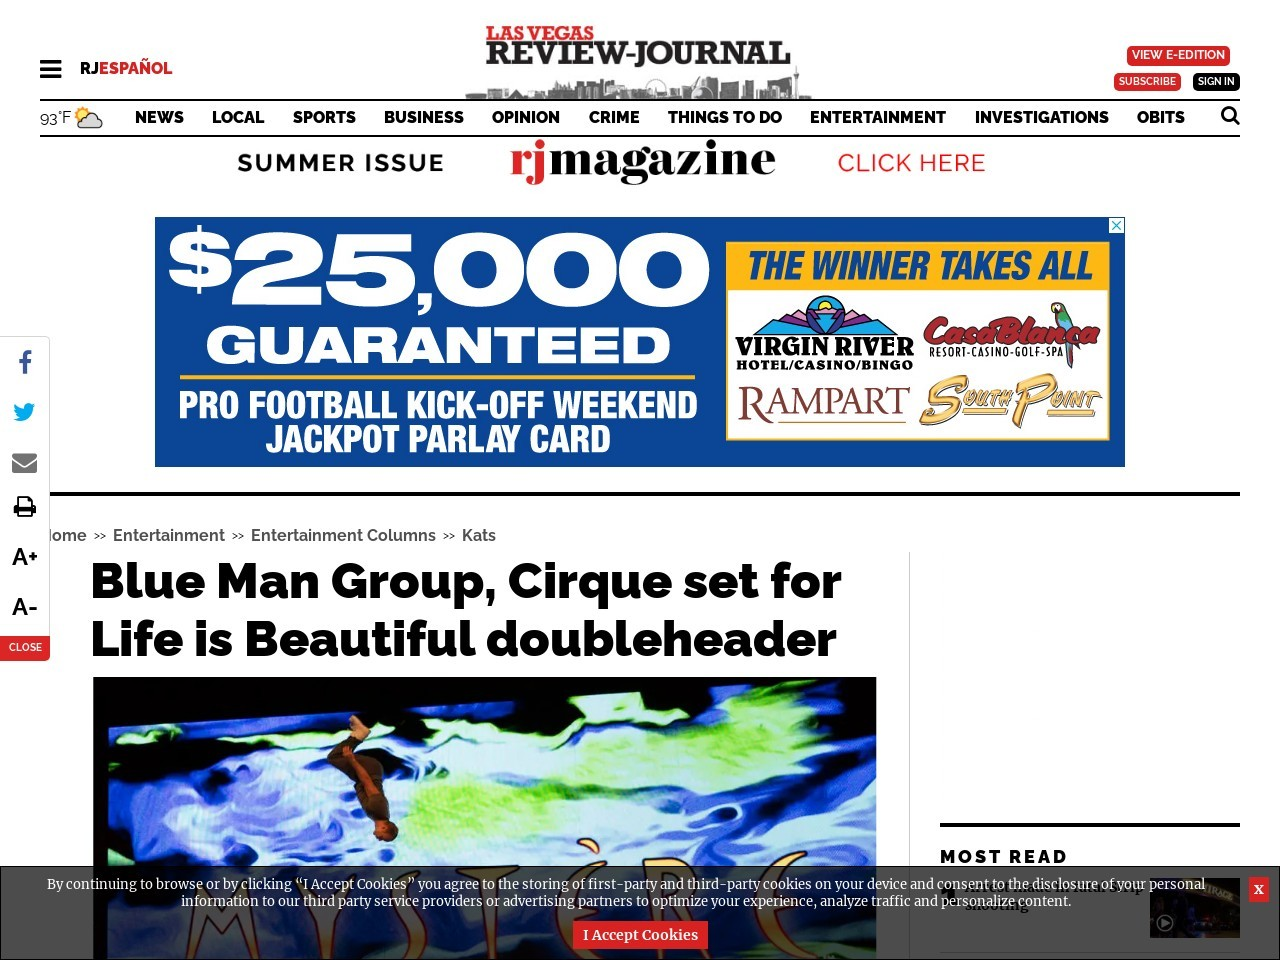 Blue Man Group, Cirque set for Life is Beautiful doubleheader